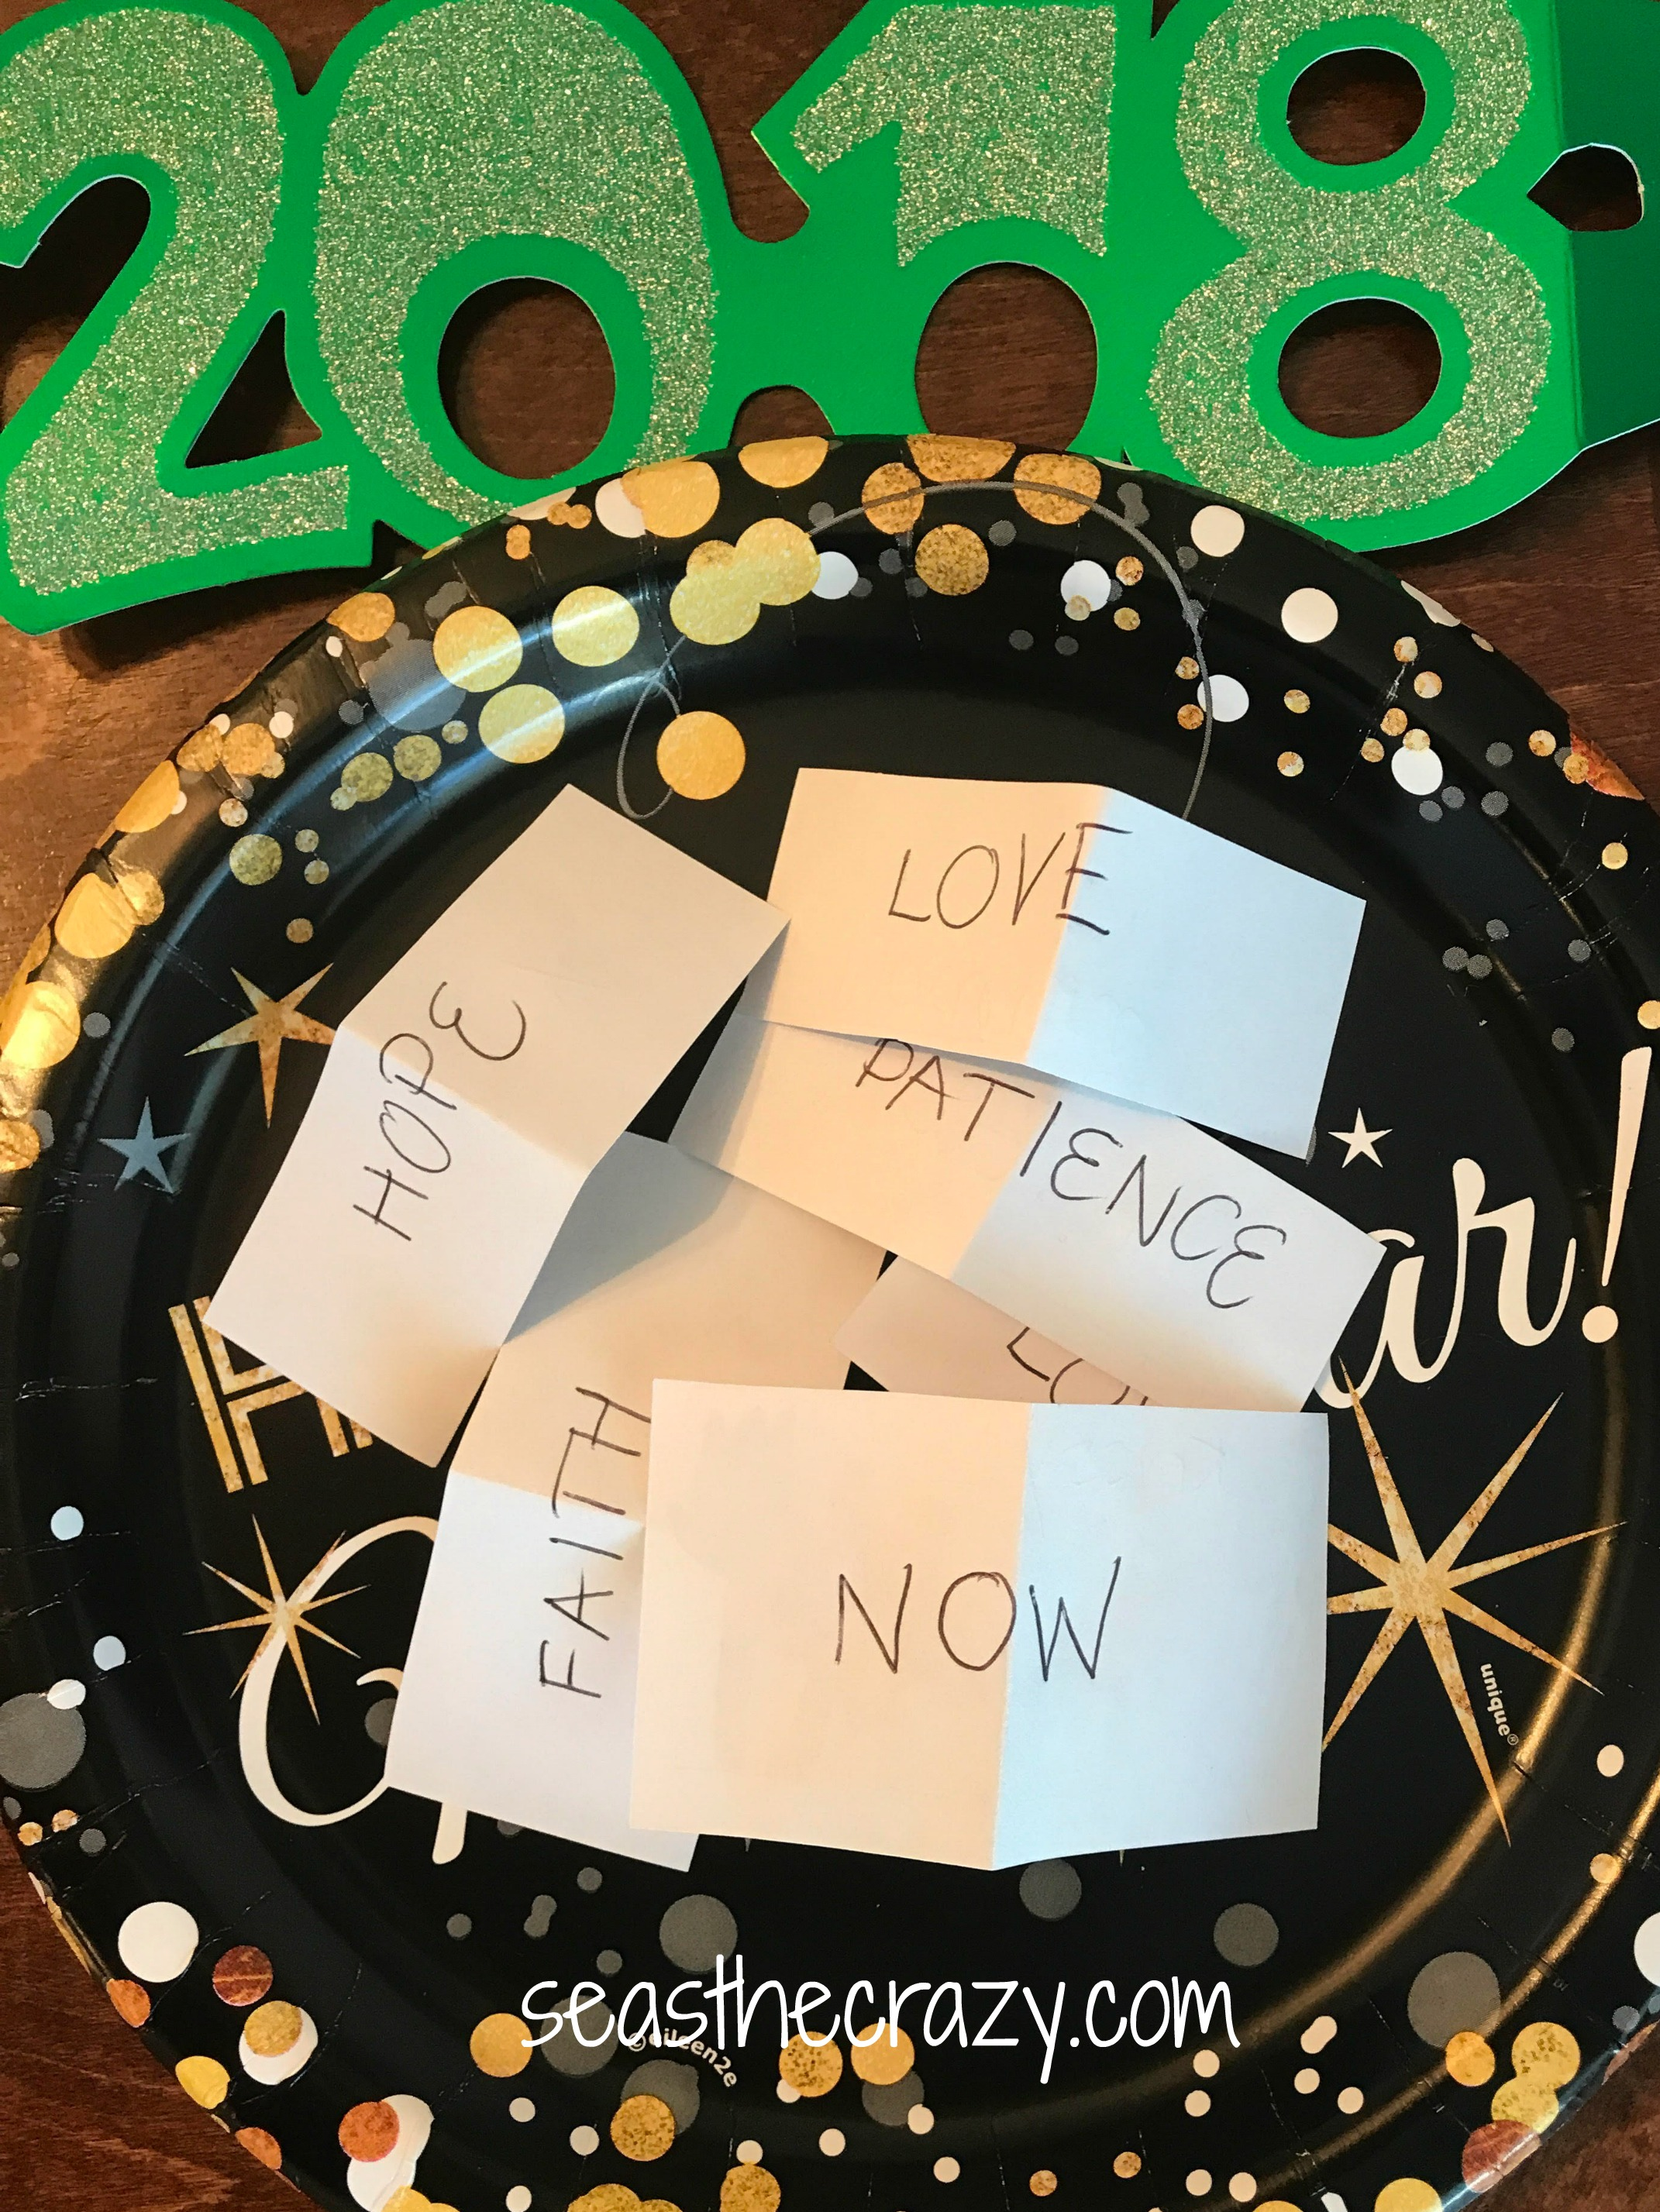 This year instead of the typical list of New Year resolutions, my family decided to go with choosing one focus word for 2018. My word is now.